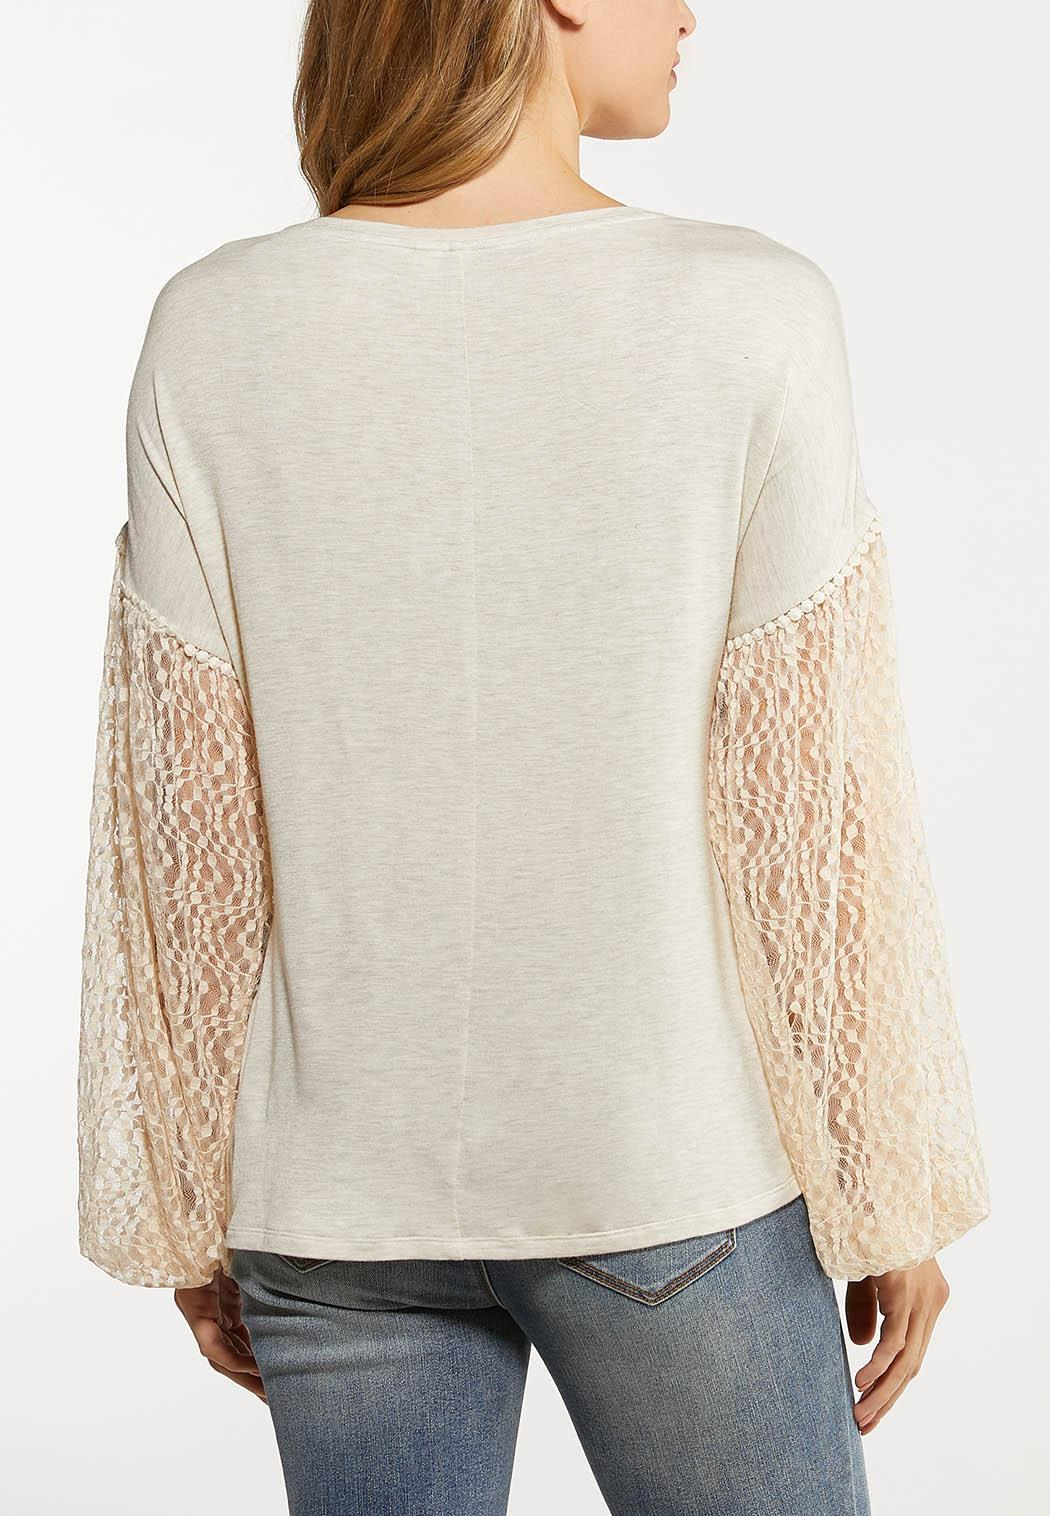 Oatmeal Lace Sleeve Top (Item #44070737)